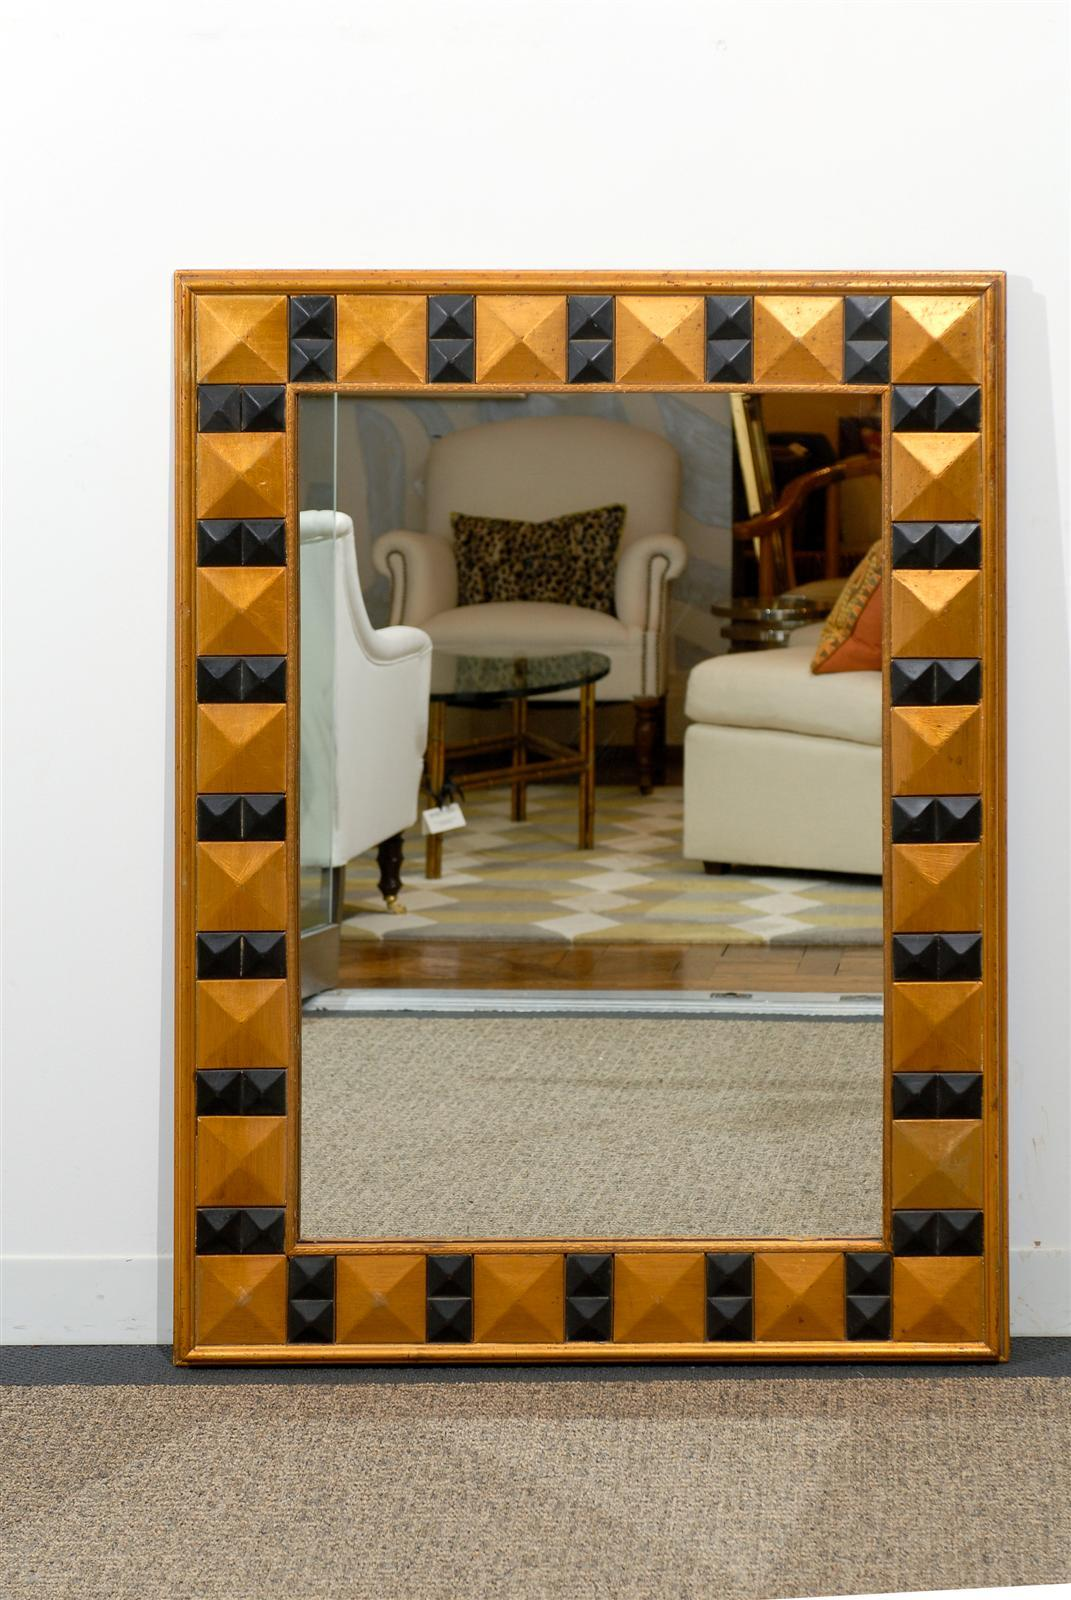 Mid-20th century giltwood and painted beveled mirror. Very striking statement for any room.